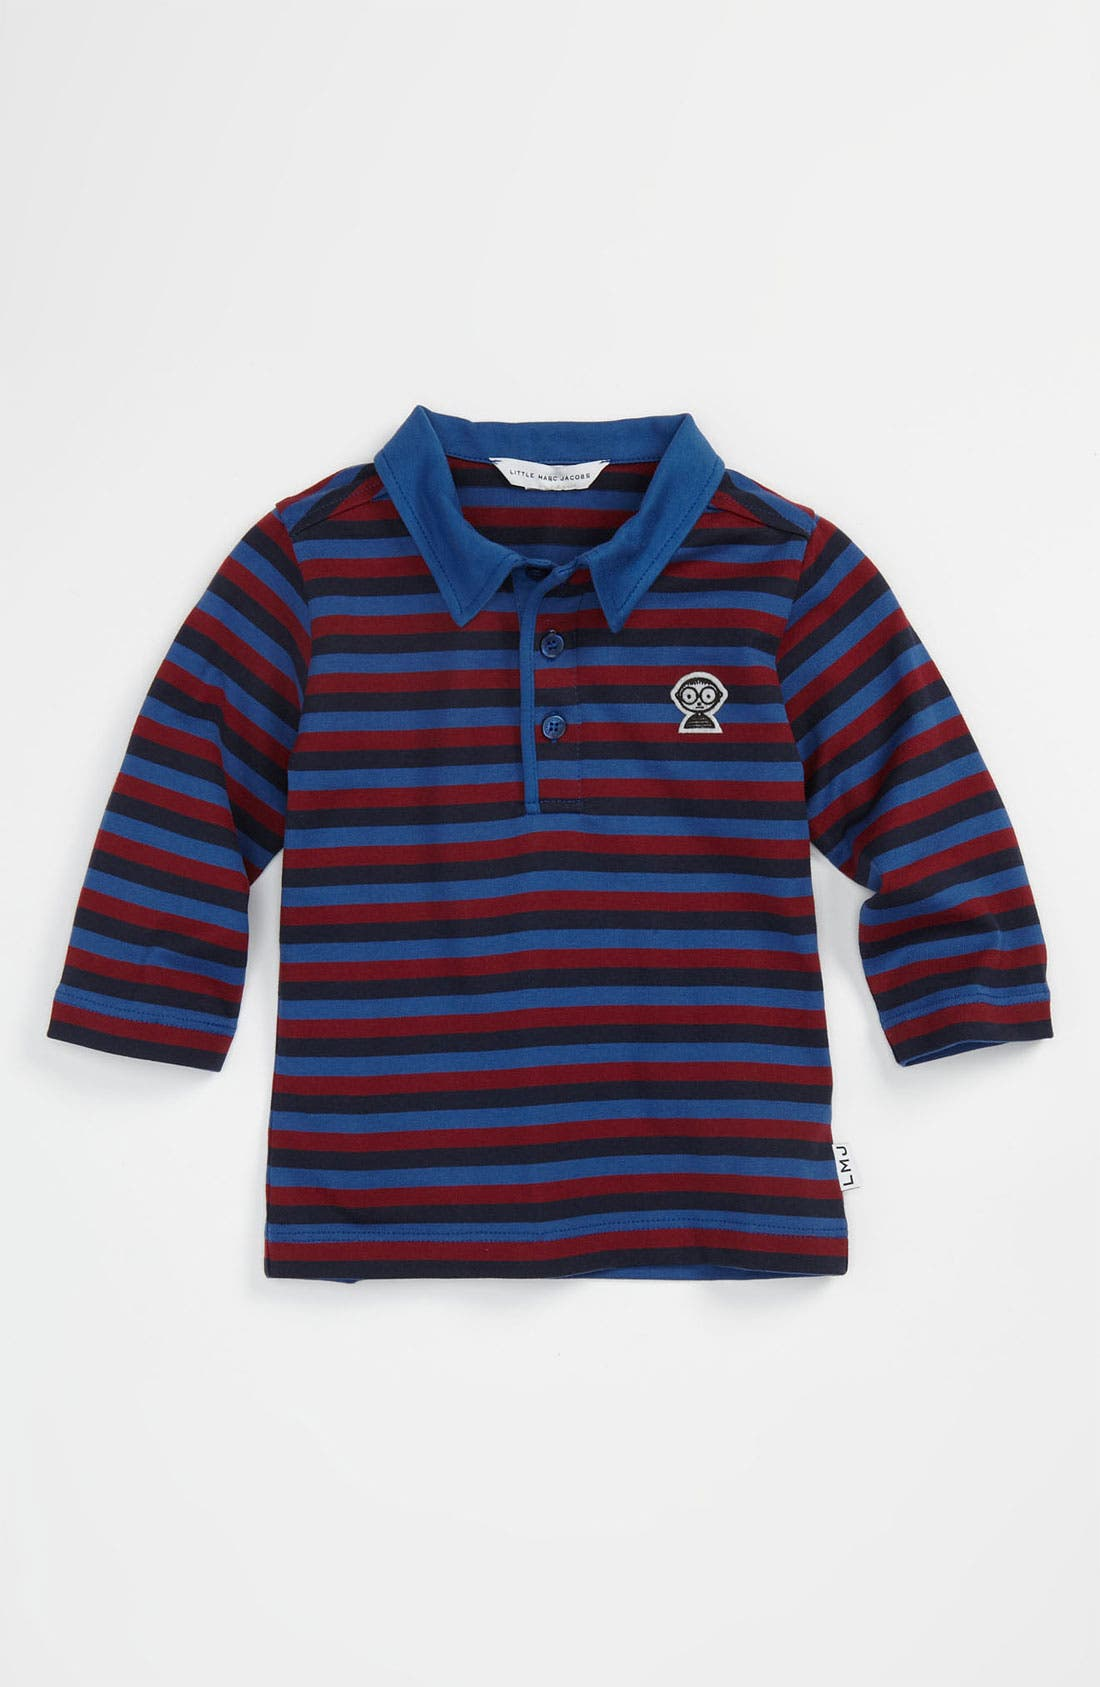 Alternate Image 1 Selected - LITTLE MARC JACOBS Stripe Polo (Infant)